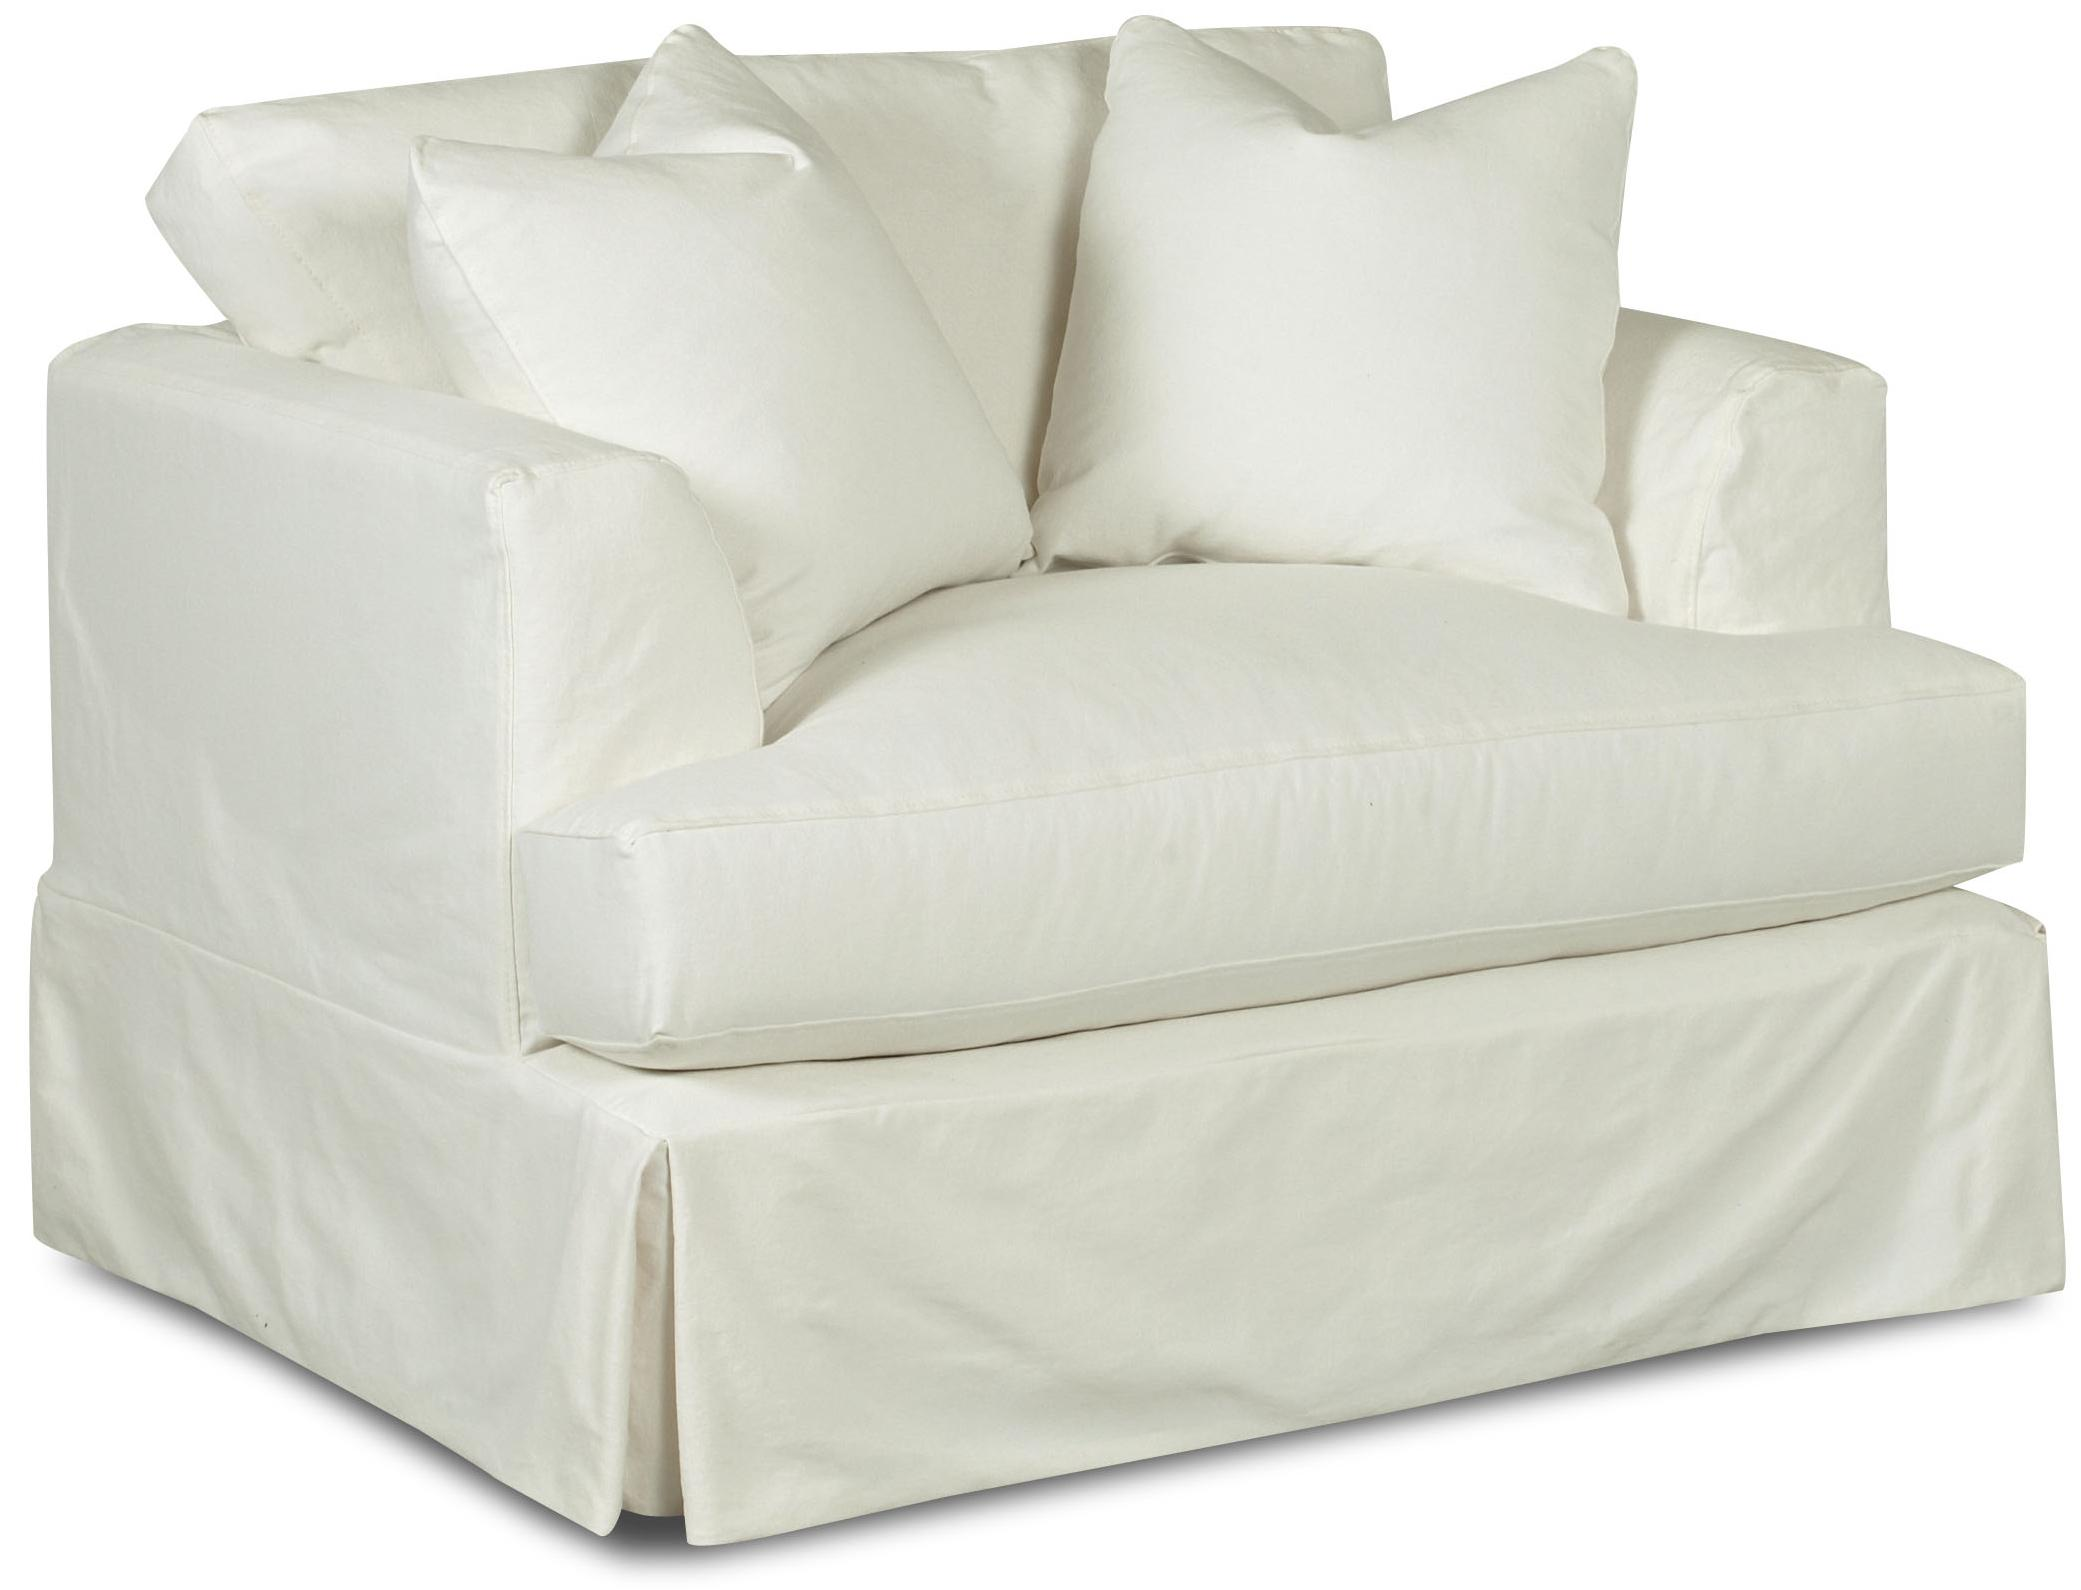 Bentley Oversized Slipcover Chair with Flared Track Arms